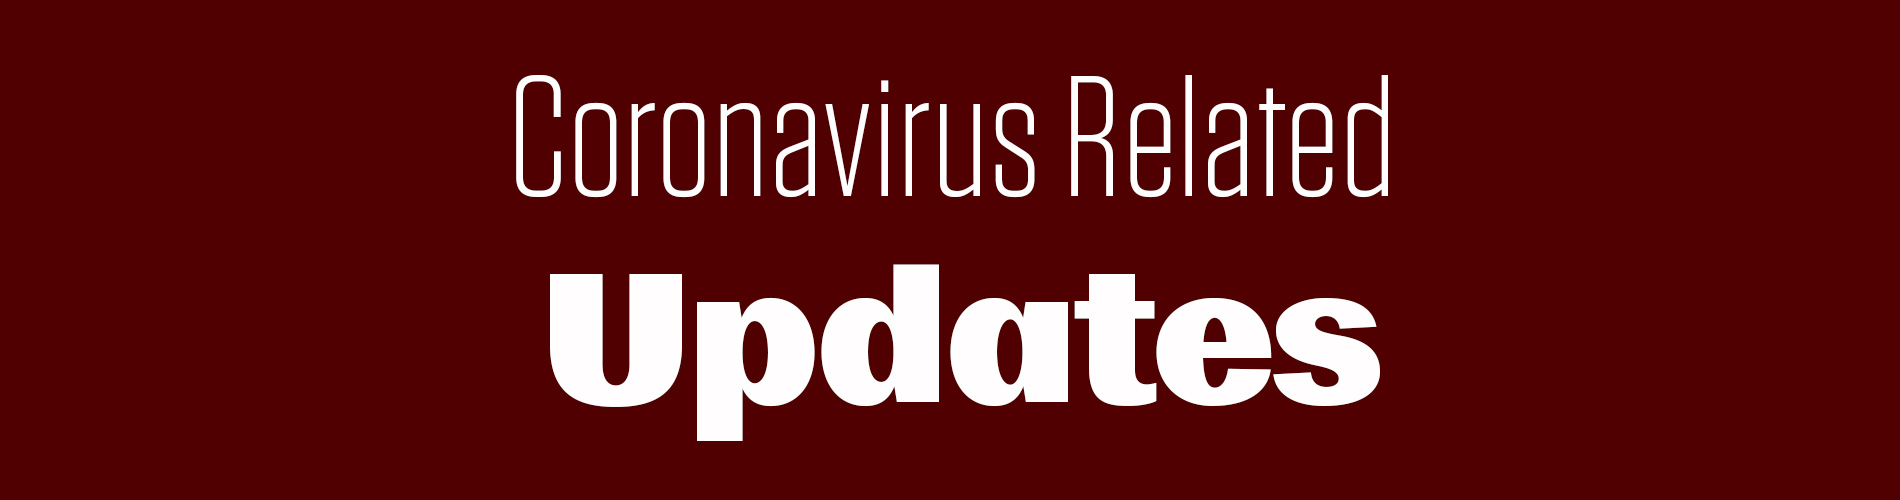 Coronavirus Related Updates